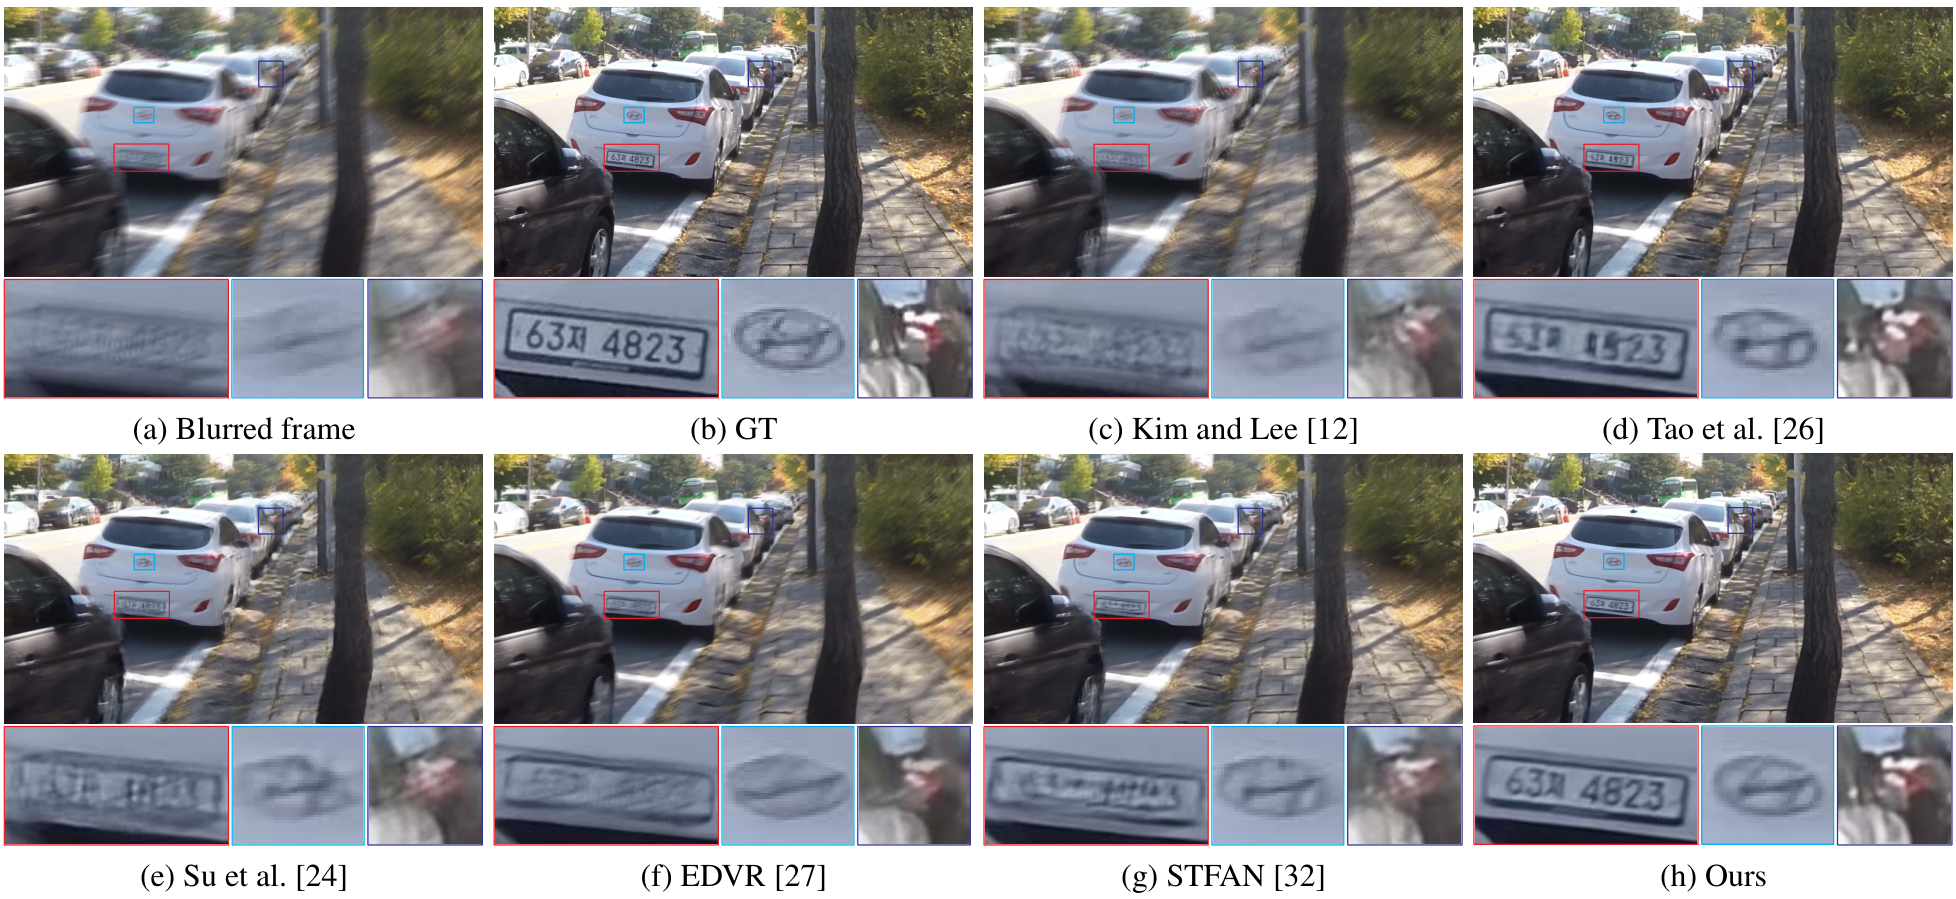 Figure 3. Deblurred results on the test dataset [20].